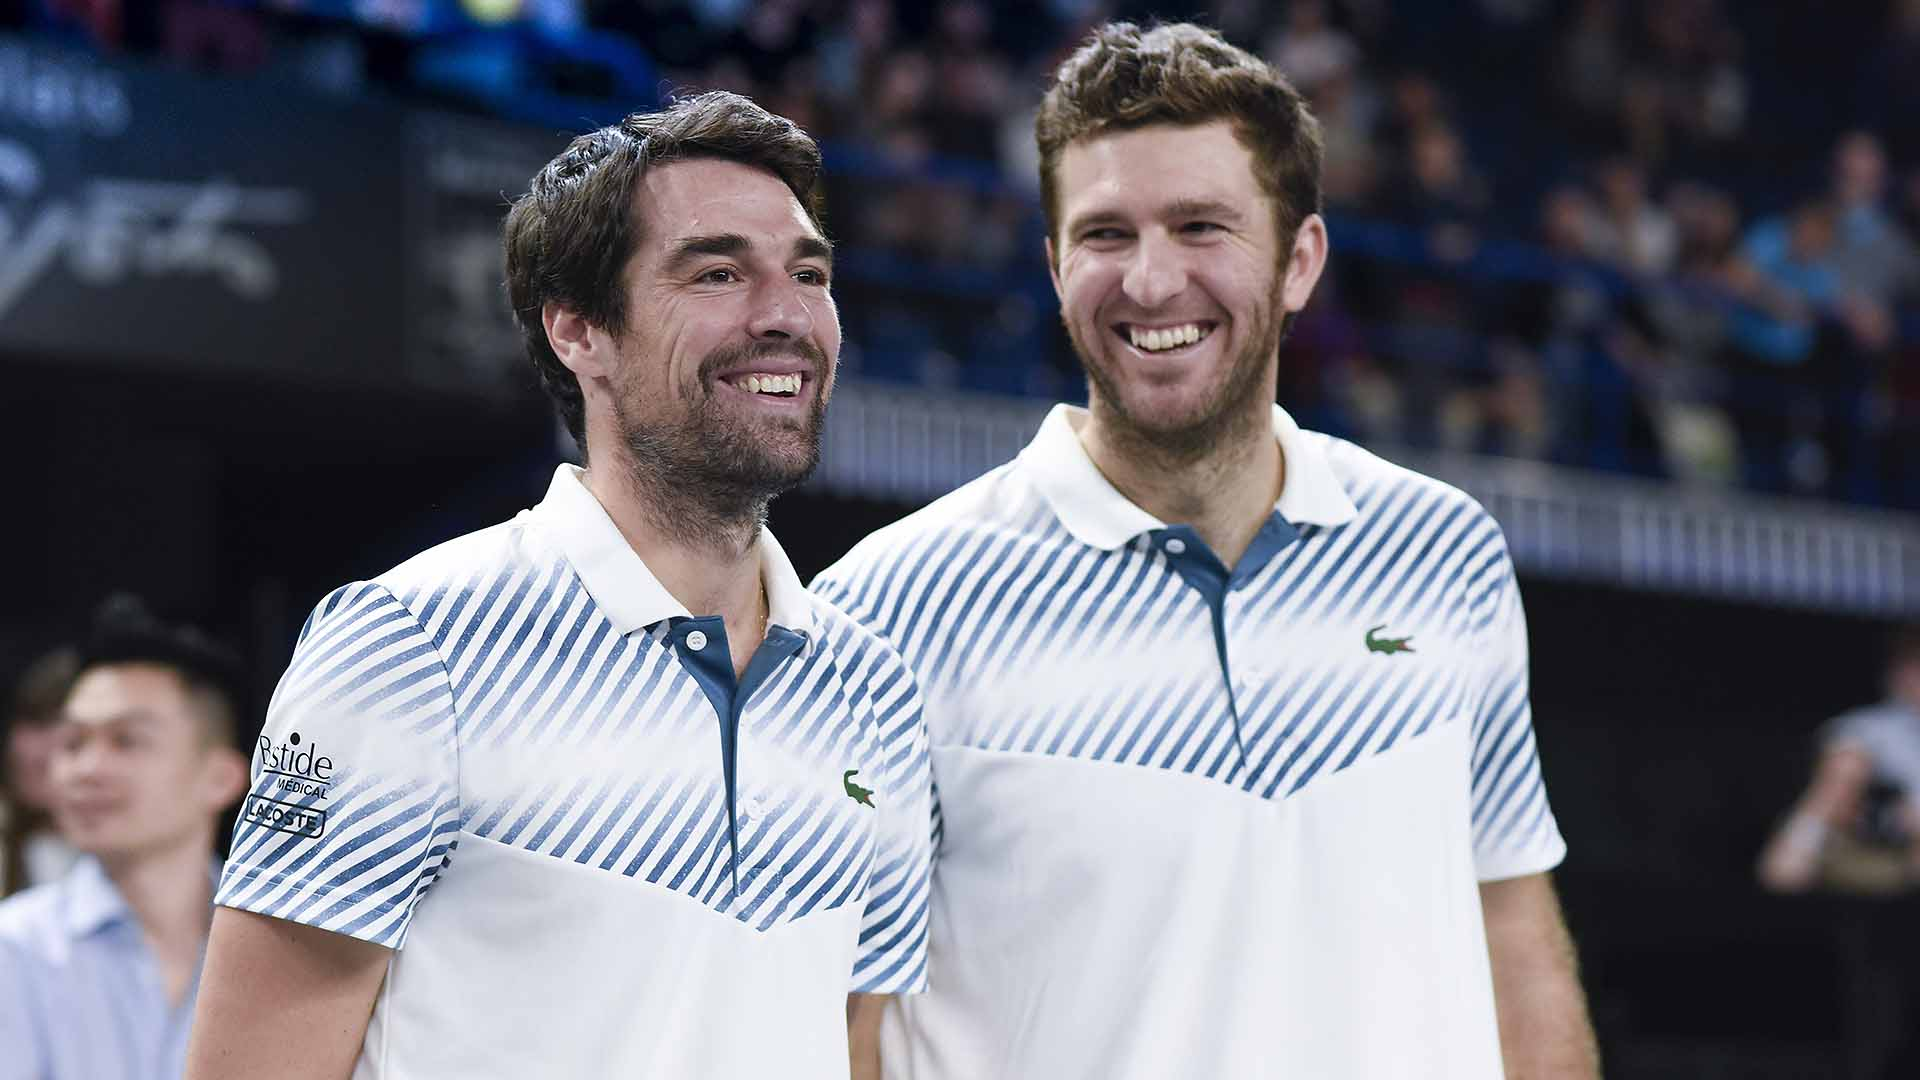 Jeremy Chardy and Fabrice Martin win their second ATP Tour title as a team at the Open 13 Provence.